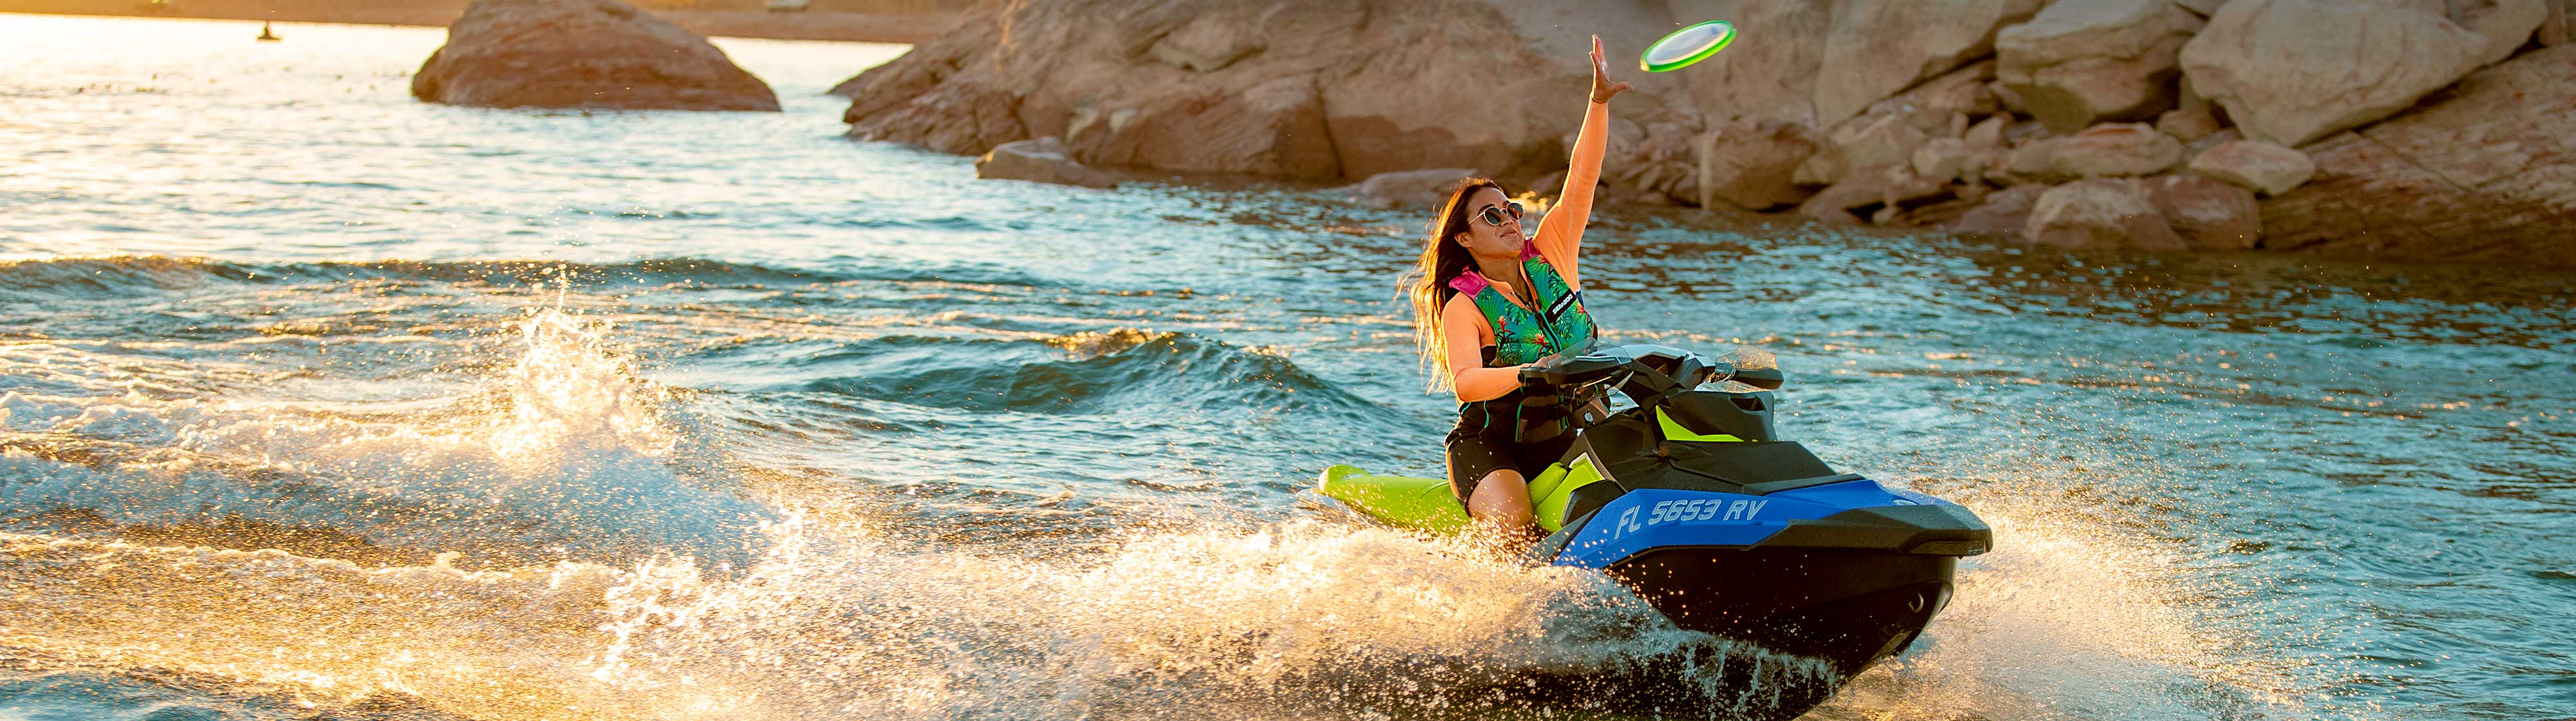 Women driving a Sea-Doo SPARK while catching a Frisbee